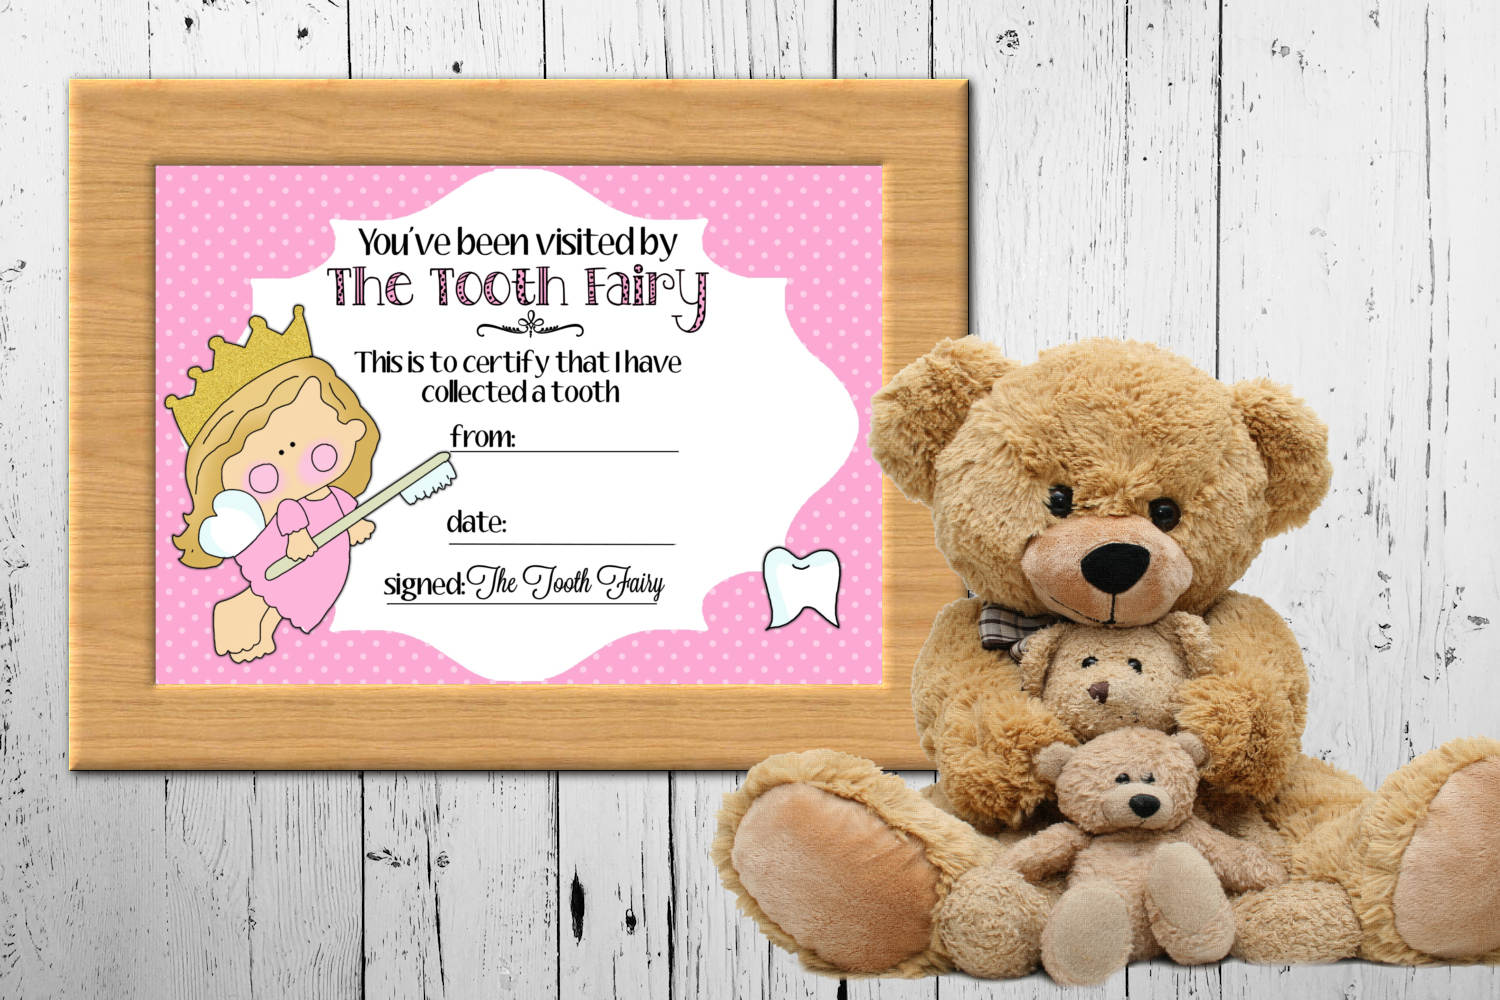 Tooth Fairy Certificate - Pink, 5 x 7 inches example image 2